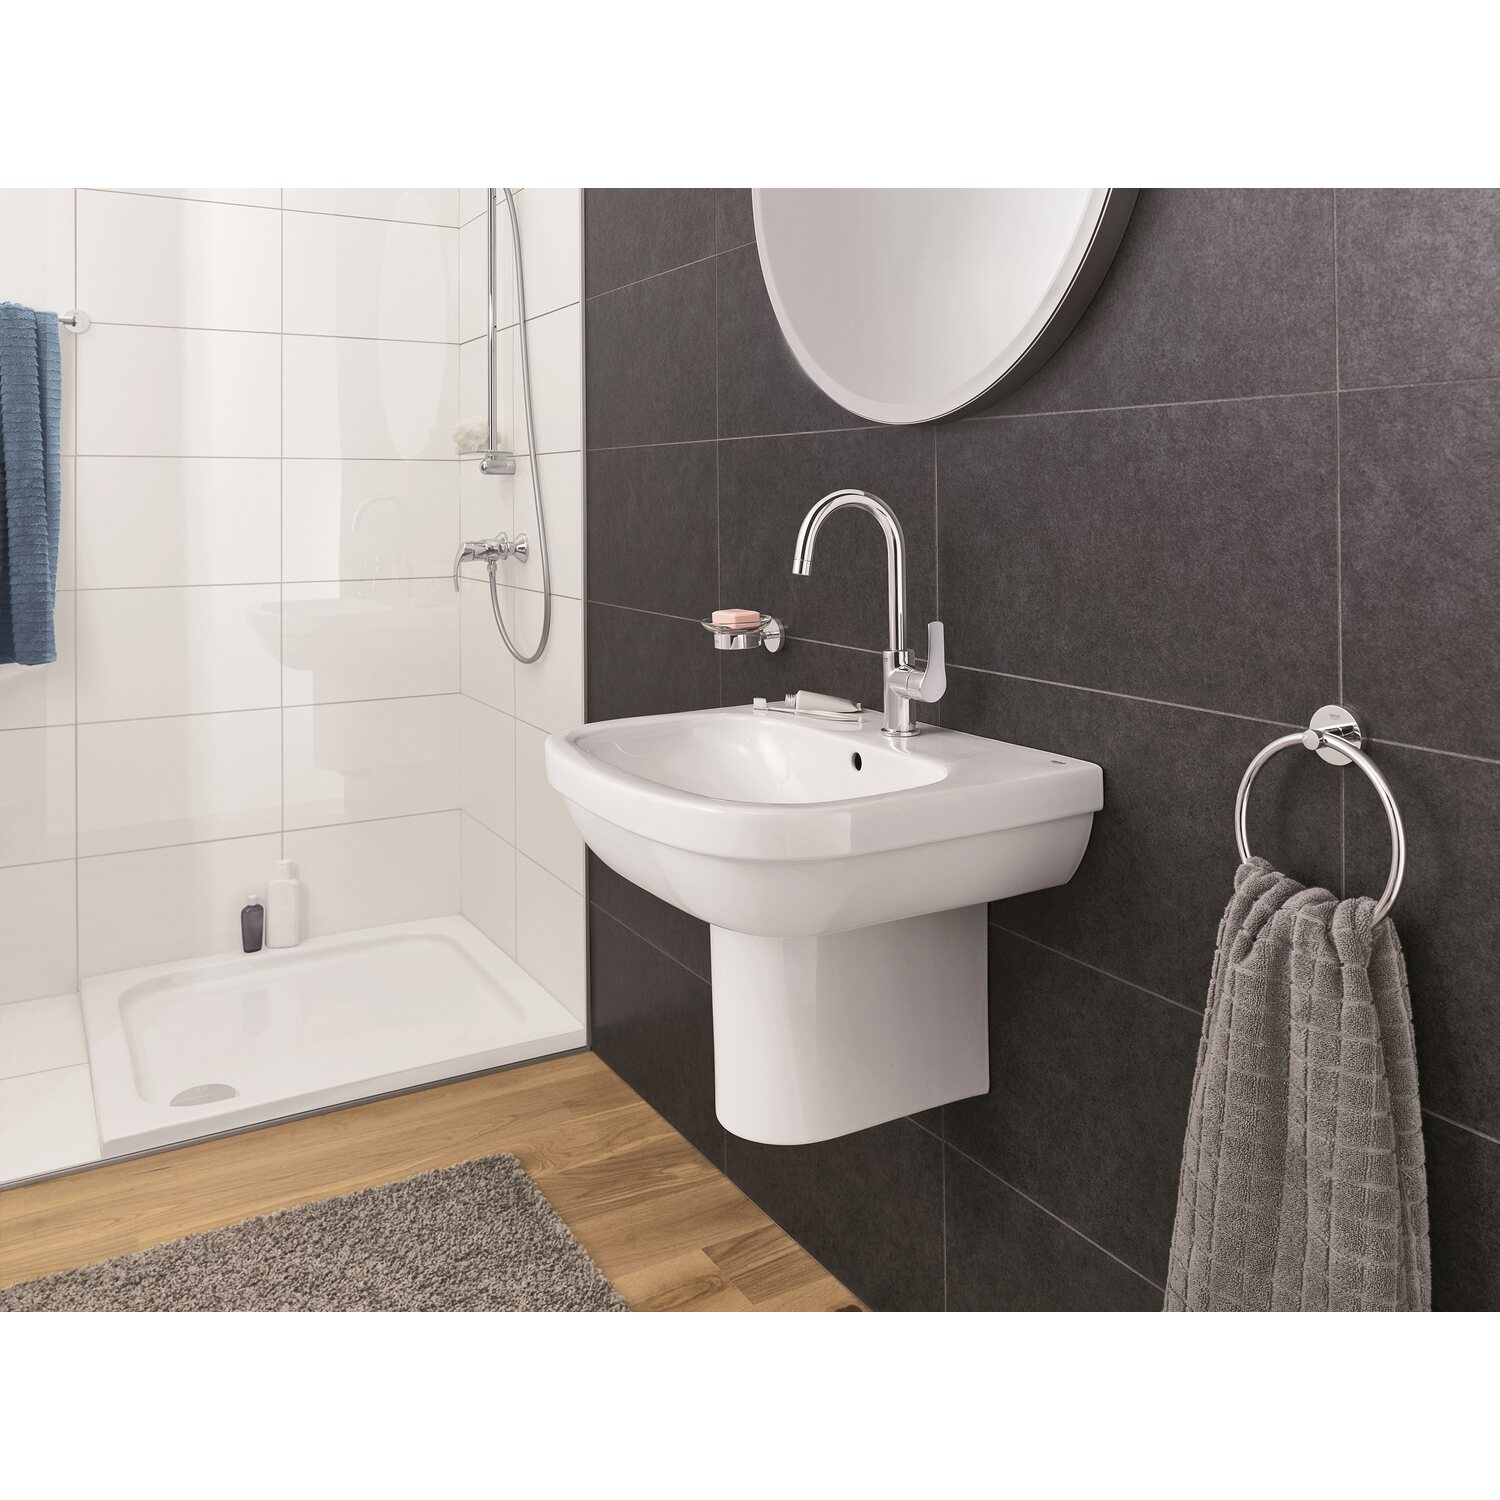 grohe waschbecken euro keramik 65 cm alpinwei kaufen bei obi. Black Bedroom Furniture Sets. Home Design Ideas